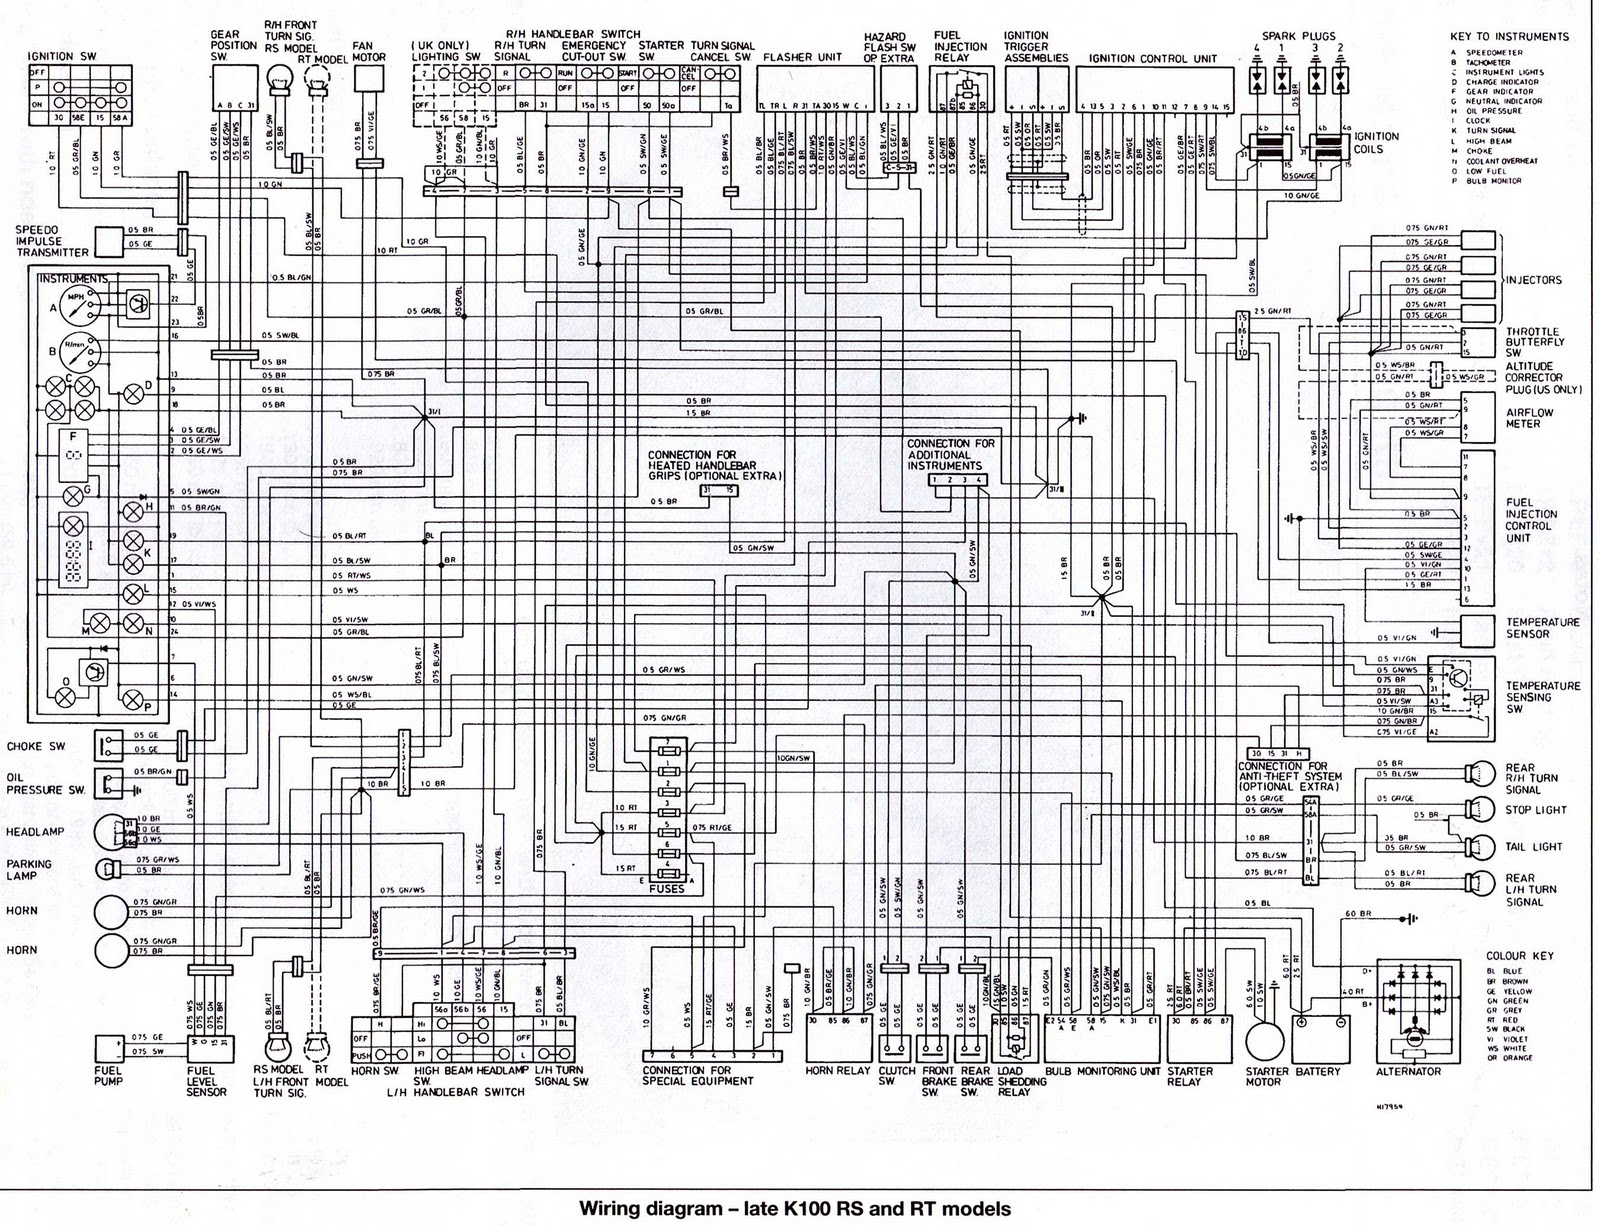 Wiring Connection Diagram 2016 Volkswagen Jetta May 2011 All About Diagrams